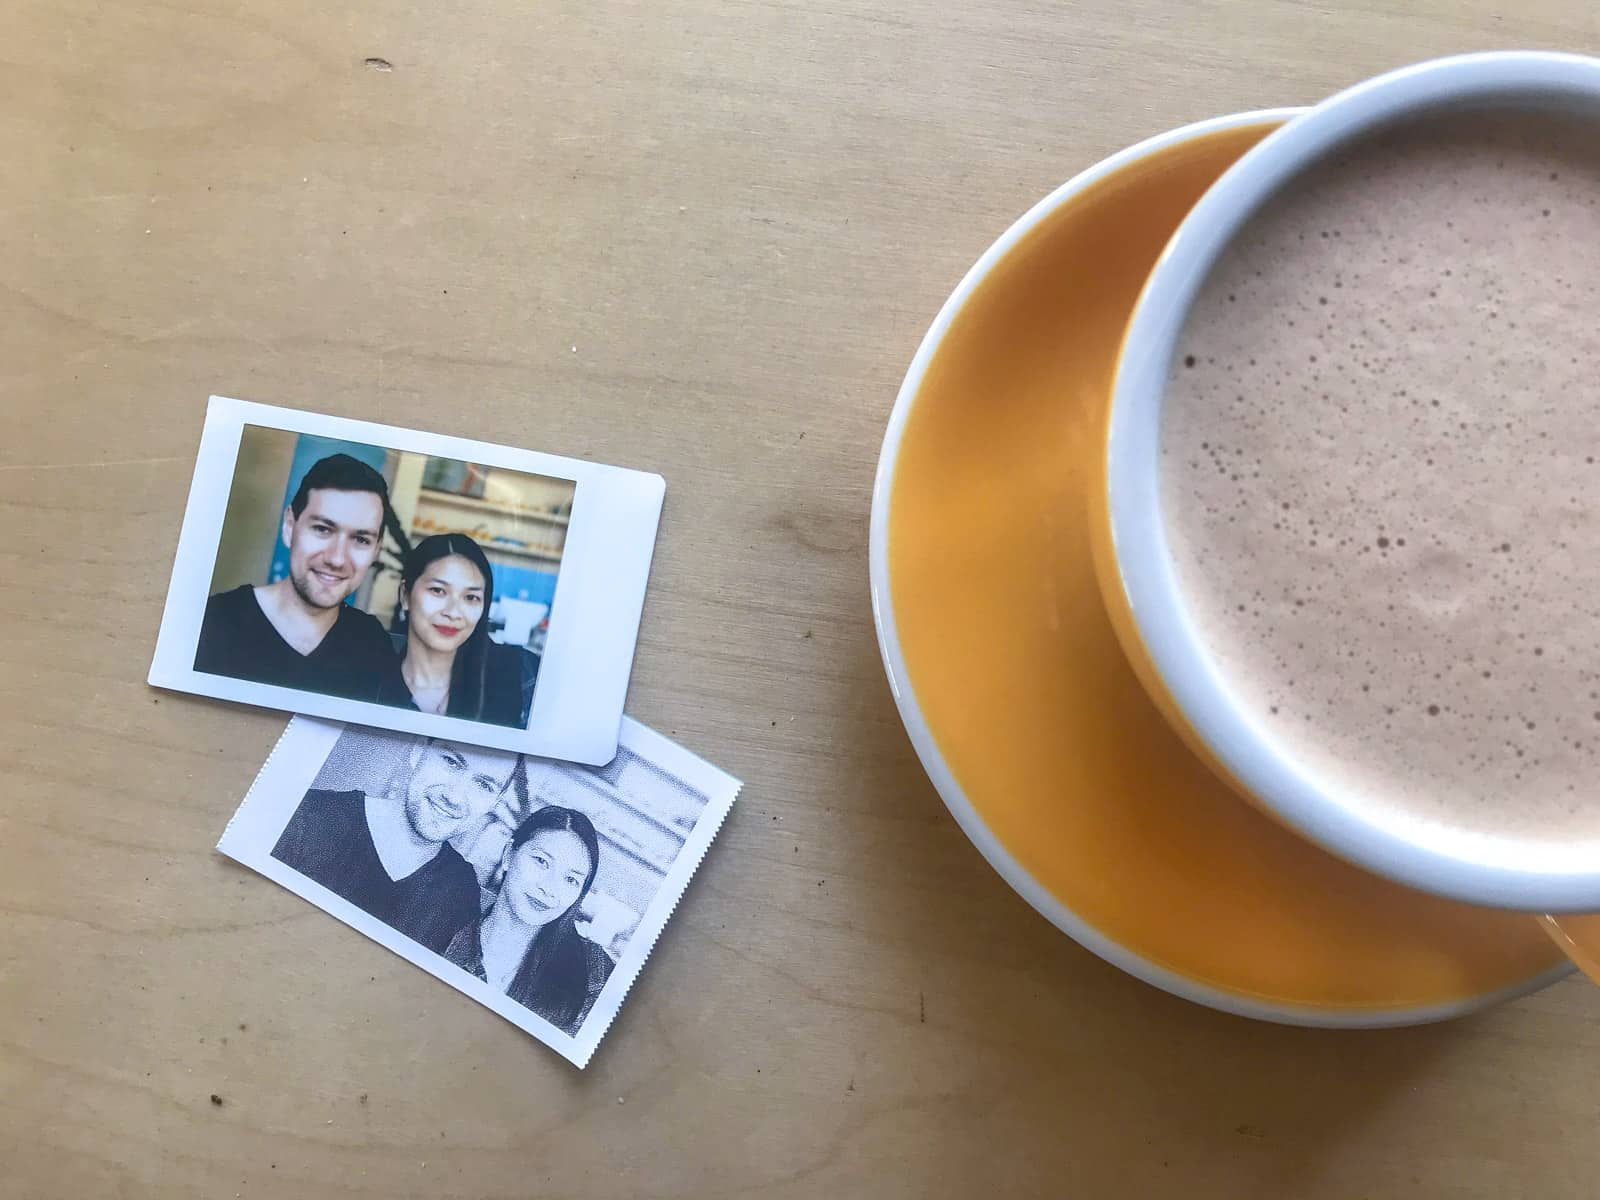 A photo of a woman and man printed onto a polaroid, next to a yellow cup of coffee